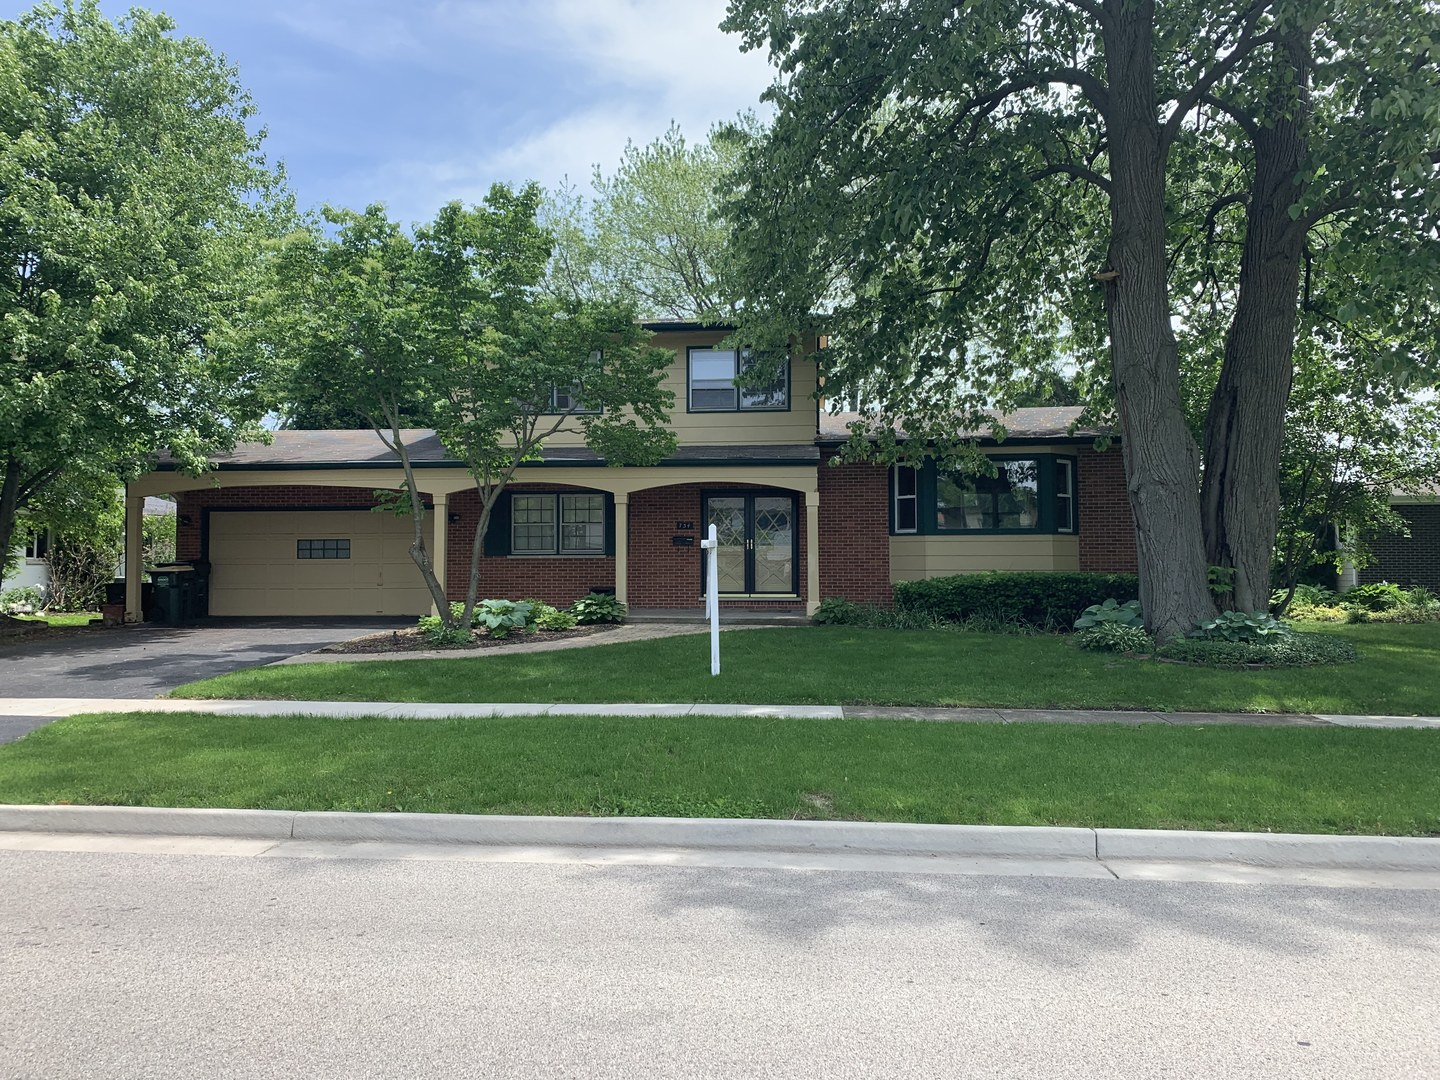 734 Kenwood Avenue, Libertyville, Illinois 60048